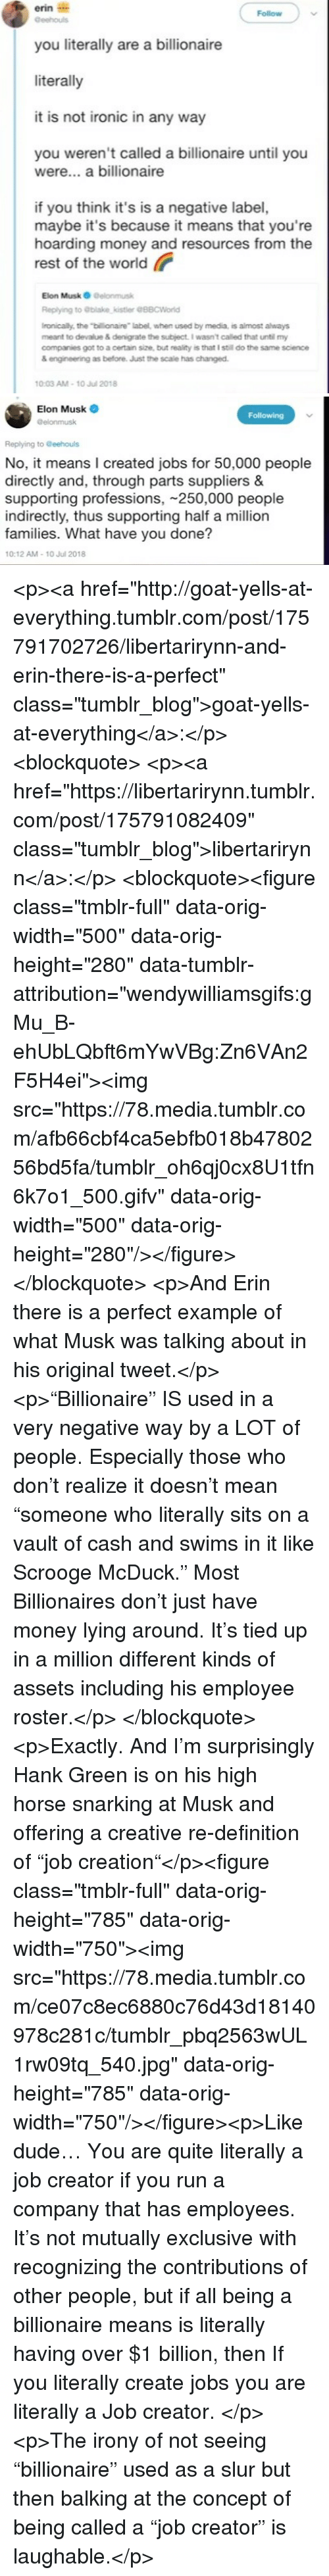 "Dude, Ironic, and Money: erin i  you literally are a billionaire  literally  it is not ironic in any way  Follow  you weren't called a billionaire until you  were... a billionaire  if you think it's is a negative label,  maybe it's because it means that you're  hoarding money and resources from the  rest of the world  Elon Musk O Delonmusk  Replying to blake,kistler @88CWorld  ronically, the ""billionaire label, when used by media, is almost always  meant to devalue & denigrate the subject. I wasnt called that until my  companies got to a certain size, but reality is that I still do the same science  & engineeing as before. Just the scale has changed.  0:03 AM-10 Jul 2018   Elon Musk  @elonmusk  Following  Replying to Geehouls  No, it means I created jobs for 50,000 people  directly and, through parts suppliers &  supporting professions, 250,000 people  indirectly, thus supporting half a million  families. What have you done?  10:12 AM-10 Jul 2018 <p><a href=""http://goat-yells-at-everything.tumblr.com/post/175791702726/libertarirynn-and-erin-there-is-a-perfect"" class=""tumblr_blog"">goat-yells-at-everything</a>:</p><blockquote> <p><a href=""https://libertarirynn.tumblr.com/post/175791082409"" class=""tumblr_blog"">libertarirynn</a>:</p>  <blockquote><figure class=""tmblr-full"" data-orig-width=""500"" data-orig-height=""280"" data-tumblr-attribution=""wendywilliamsgifs:gMu_B-ehUbLQbft6mYwVBg:Zn6VAn2F5H4ei""><img src=""https://78.media.tumblr.com/afb66cbf4ca5ebfb018b4780256bd5fa/tumblr_oh6qj0cx8U1tfn6k7o1_500.gifv"" data-orig-width=""500"" data-orig-height=""280""/></figure></blockquote>  <p>And Erin there is a perfect example of what Musk was talking about in his original tweet.</p> <p>""Billionaire"" IS used in a very negative way by a LOT of people. Especially those who don't realize it doesn't mean ""someone who literally sits on a vault of cash and swims in it like Scrooge McDuck."" Most Billionaires don't just have money lying around. It's tied up in a million different kinds of assets including his employee roster.</p> </blockquote><p>Exactly. And I'm surprisingly Hank Green is on his high horse snarking at Musk and offering a creative re-definition of ""job creation""</p><figure class=""tmblr-full"" data-orig-height=""785"" data-orig-width=""750""><img src=""https://78.media.tumblr.com/ce07c8ec6880c76d43d18140978c281c/tumblr_pbq2563wUL1rw09tq_540.jpg"" data-orig-height=""785"" data-orig-width=""750""/></figure><p>Like dude… You are quite literally a job creator if you run a company that has employees. It's not mutually exclusive with recognizing the contributions of other people, but if all being a billionaire means is literally having over $1 billion, then If you literally create jobs you are literally a Job creator. </p><p>The irony of not seeing ""billionaire"" used as a slur but then balking at the concept of being called a ""job creator"" is laughable.</p>"